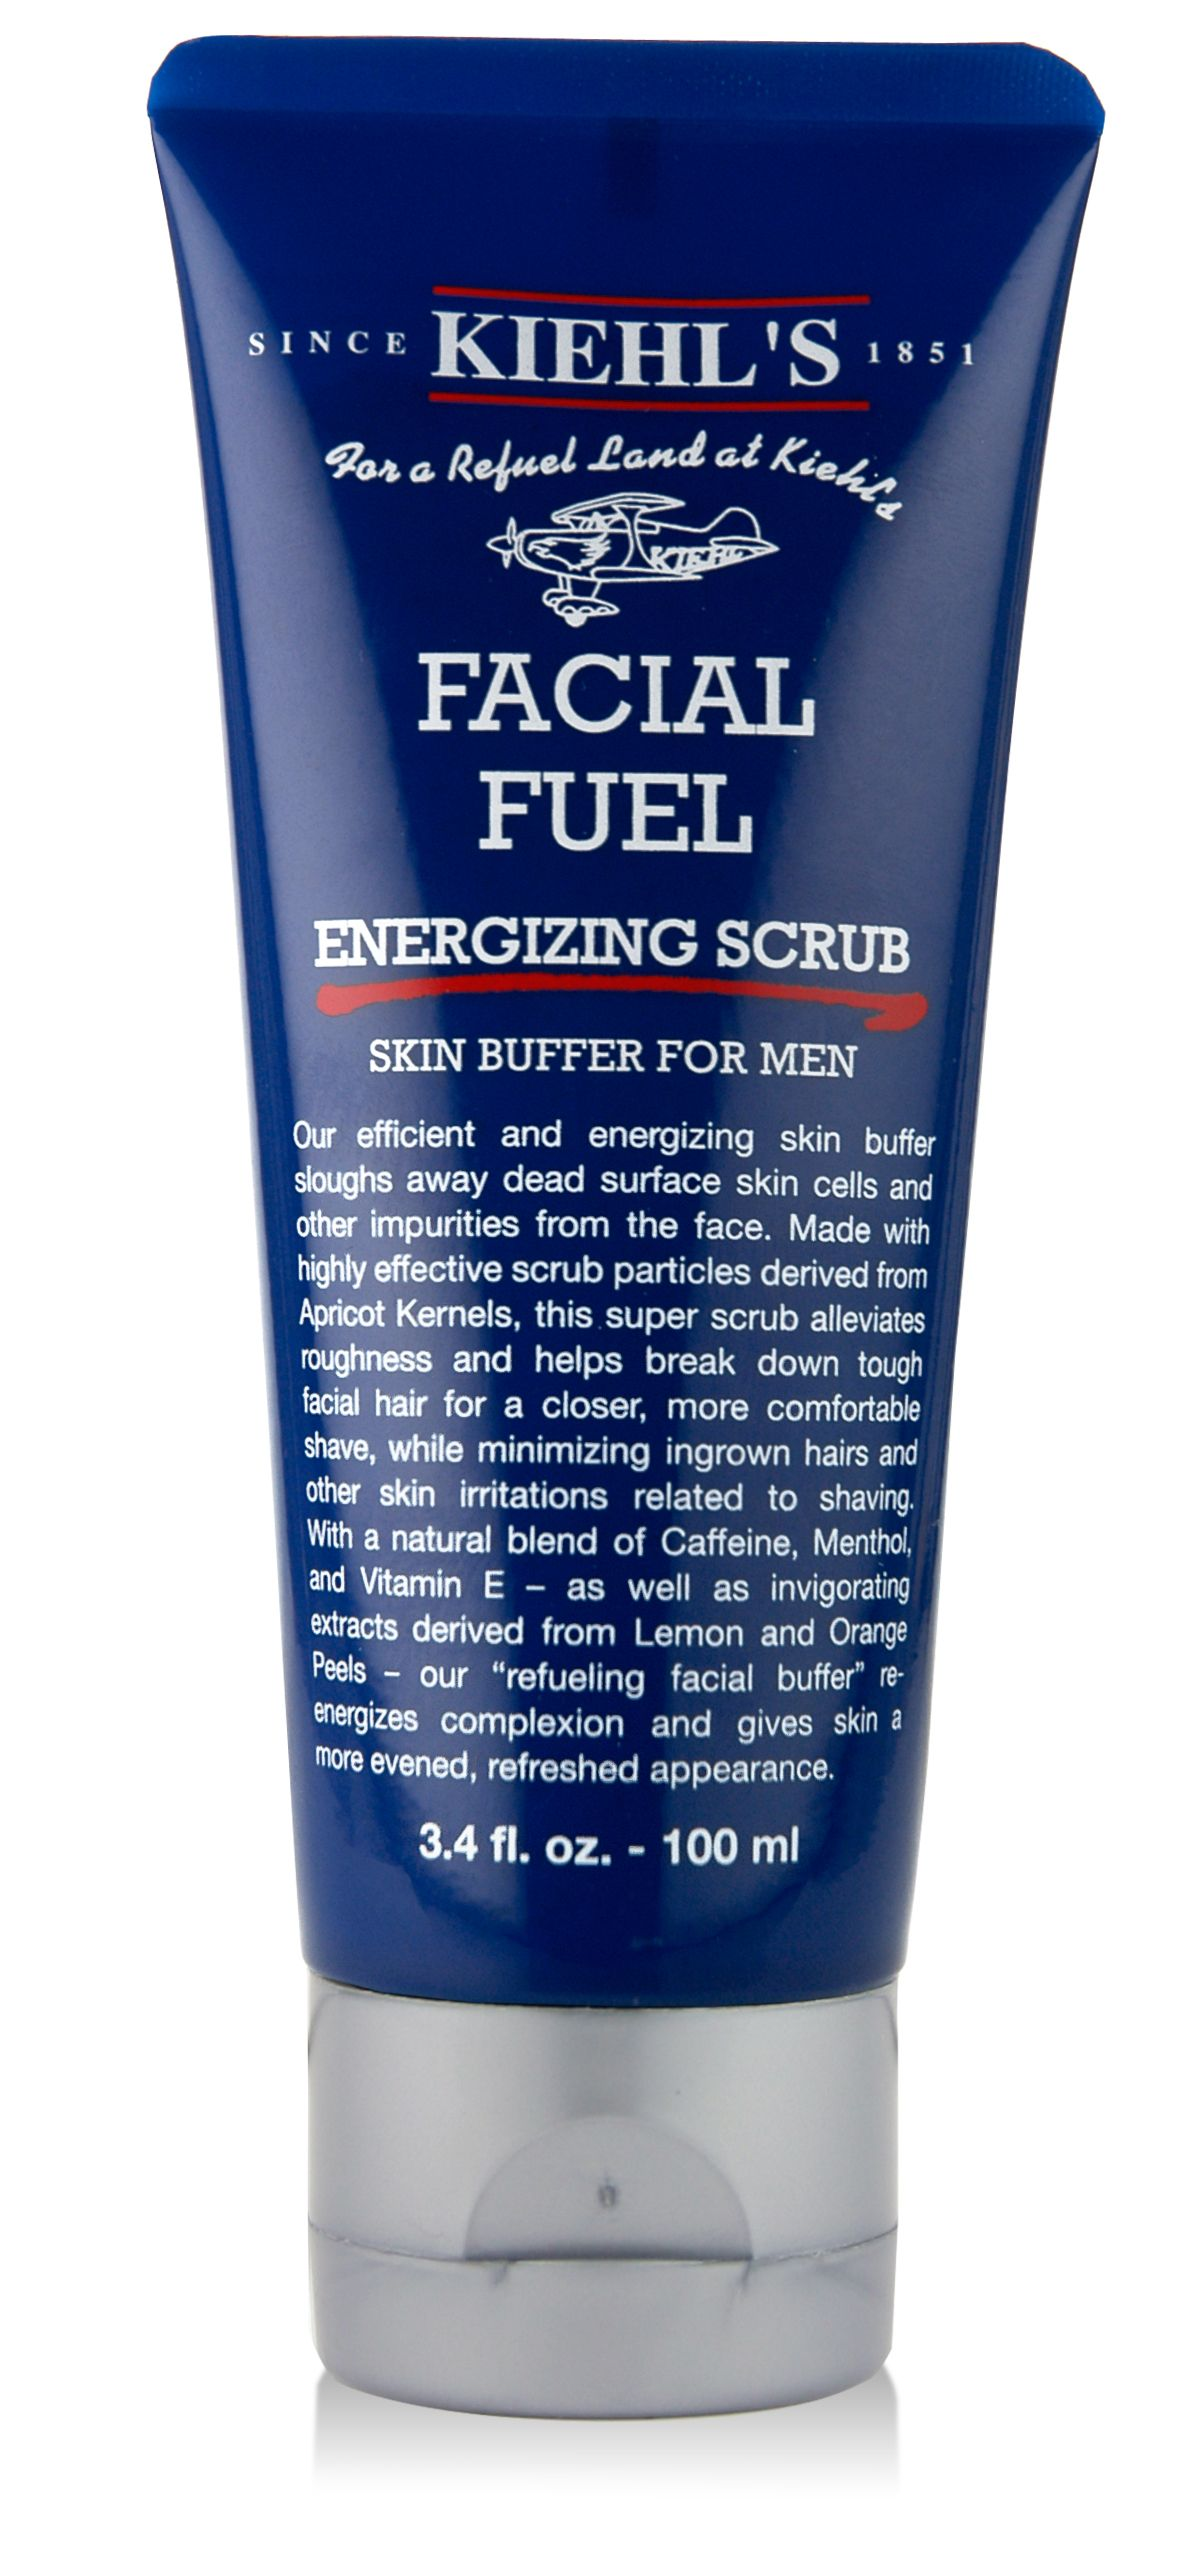 Facial Fuel Energizing Scrub, 100ml